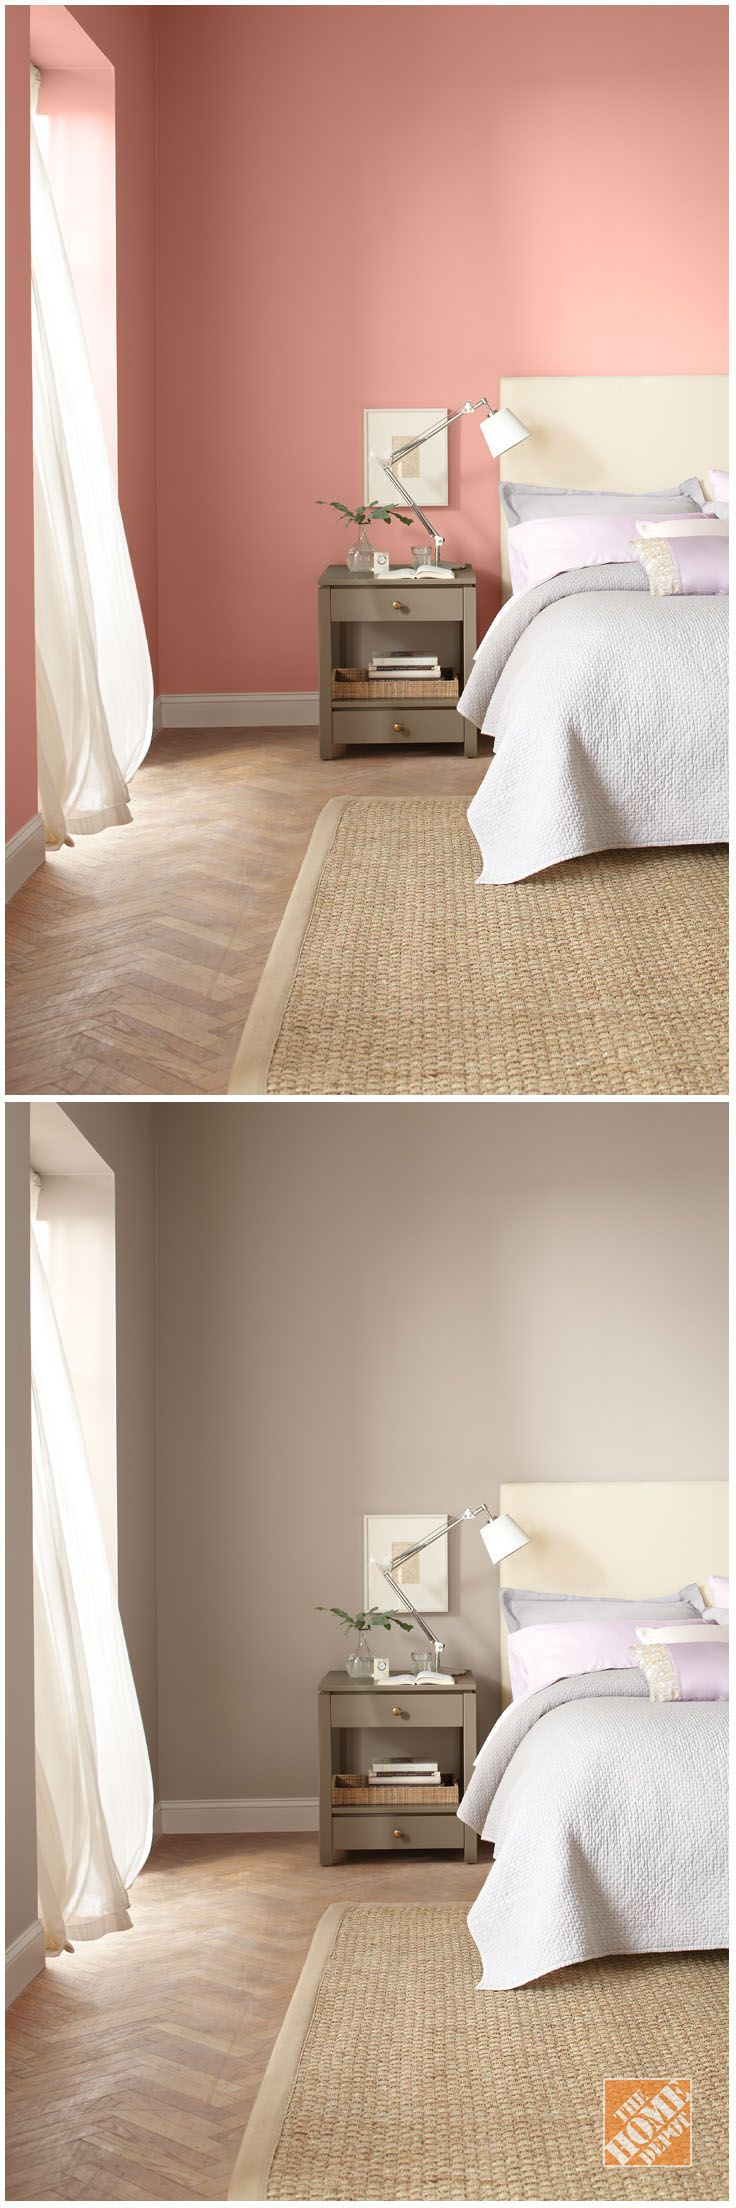 Incroyable No Matter Your Color Palette, A Fresh Coat Of Behr Paint Can Make A Big  Difference In A Bedroom Makeover! Check Out The Home Depot Color Center For  A Great ...